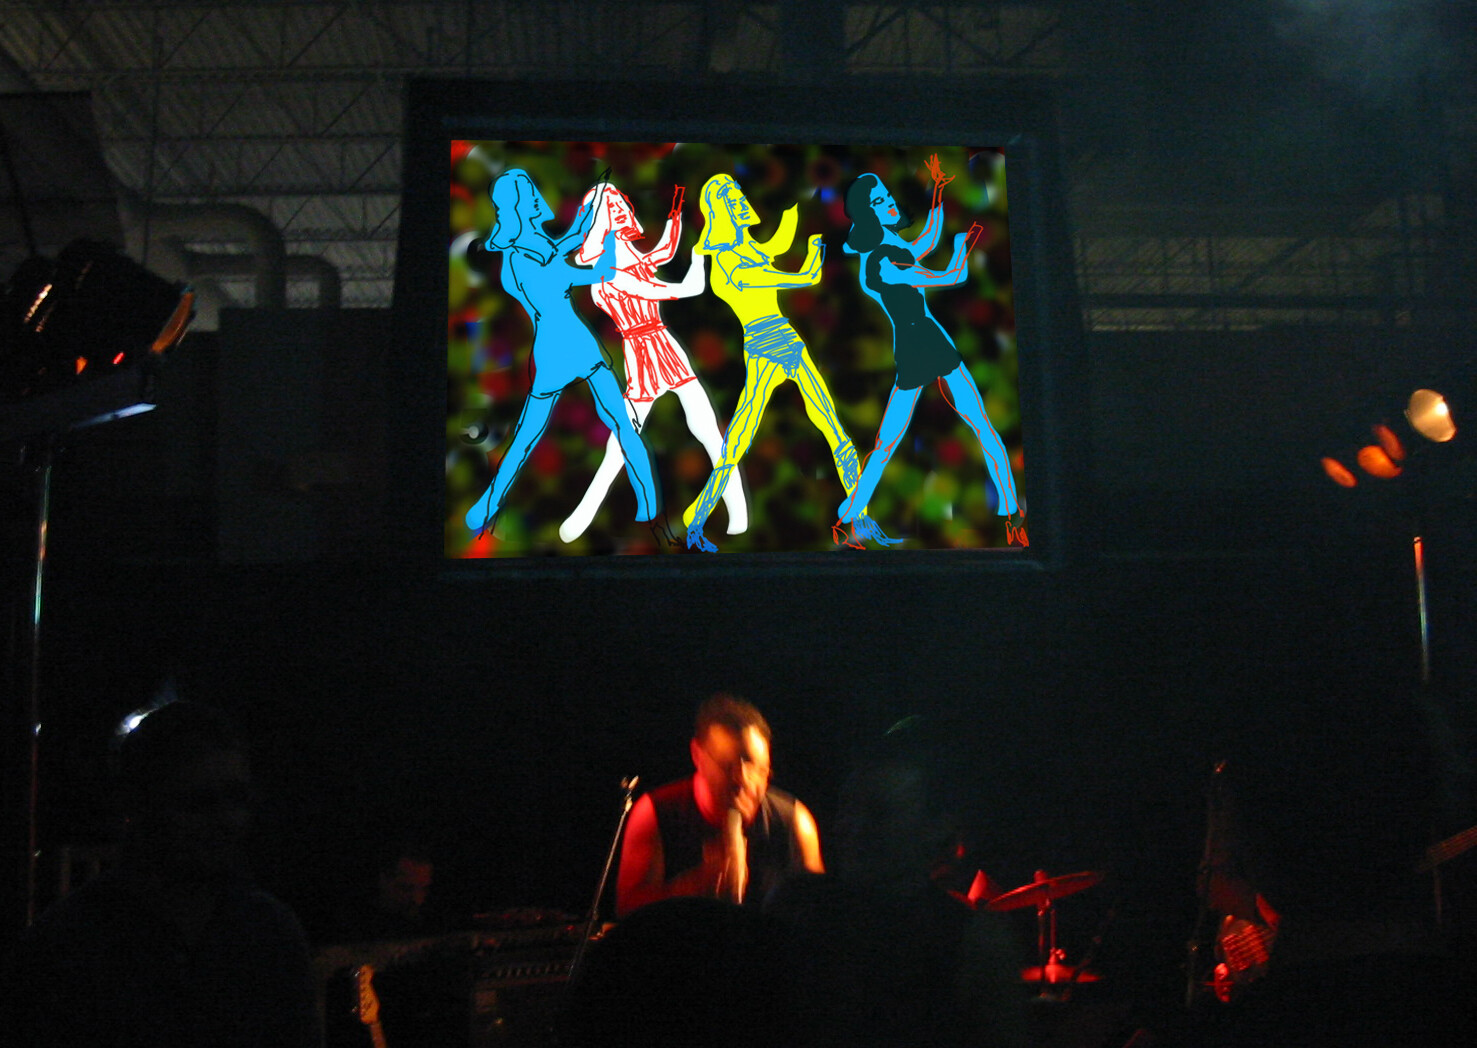 Live painting with computers